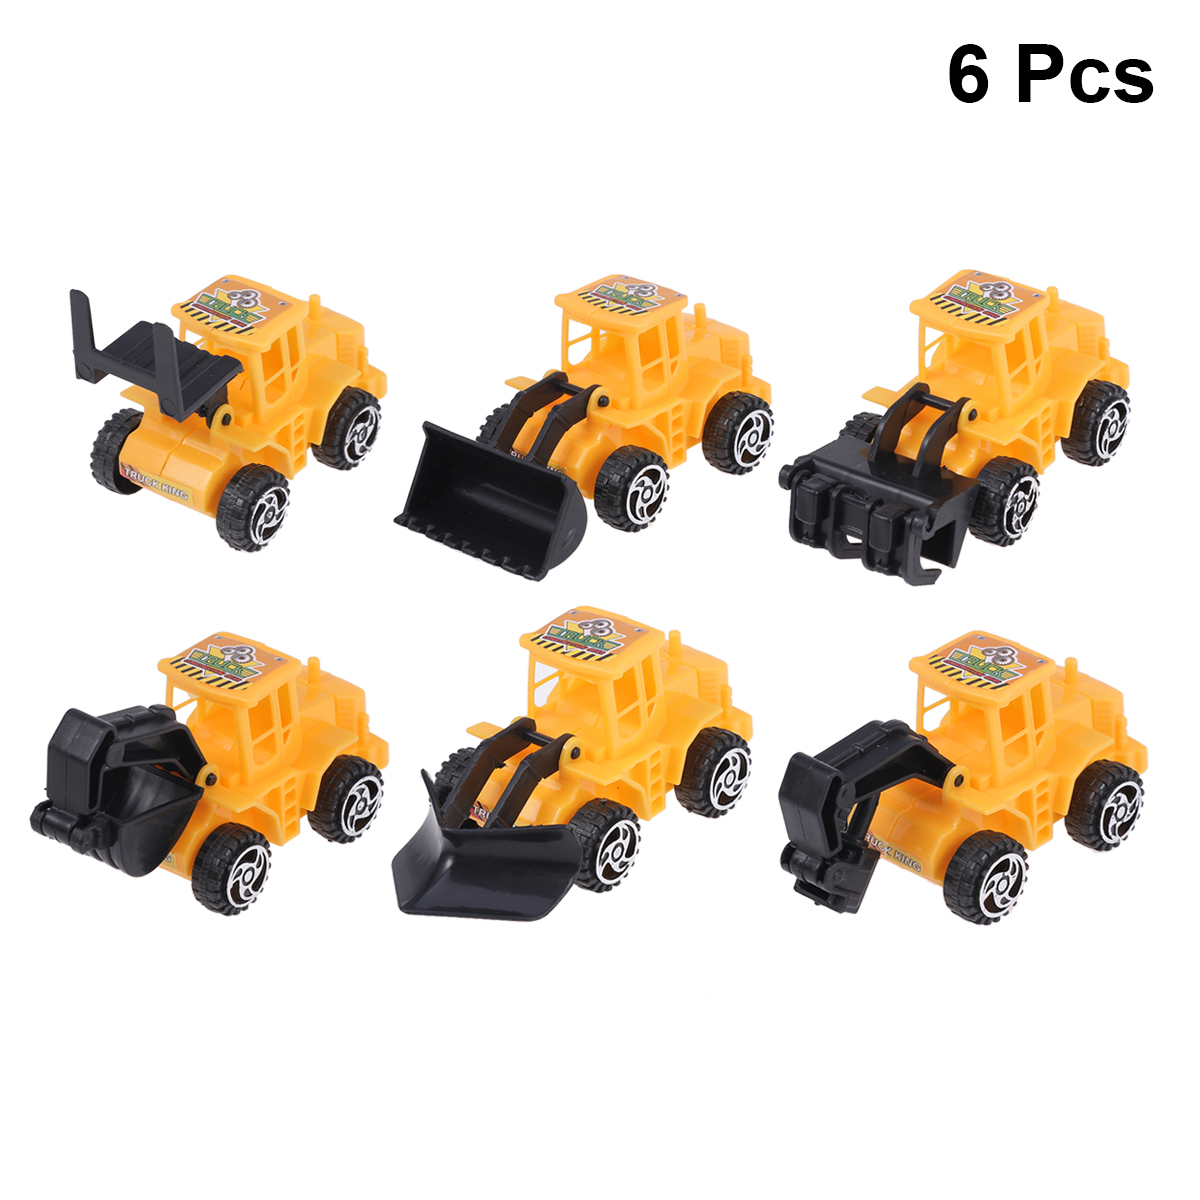 6X Construction Toys Cars Set Cup Cake Decorations Excavator Vehicles Dump Truck